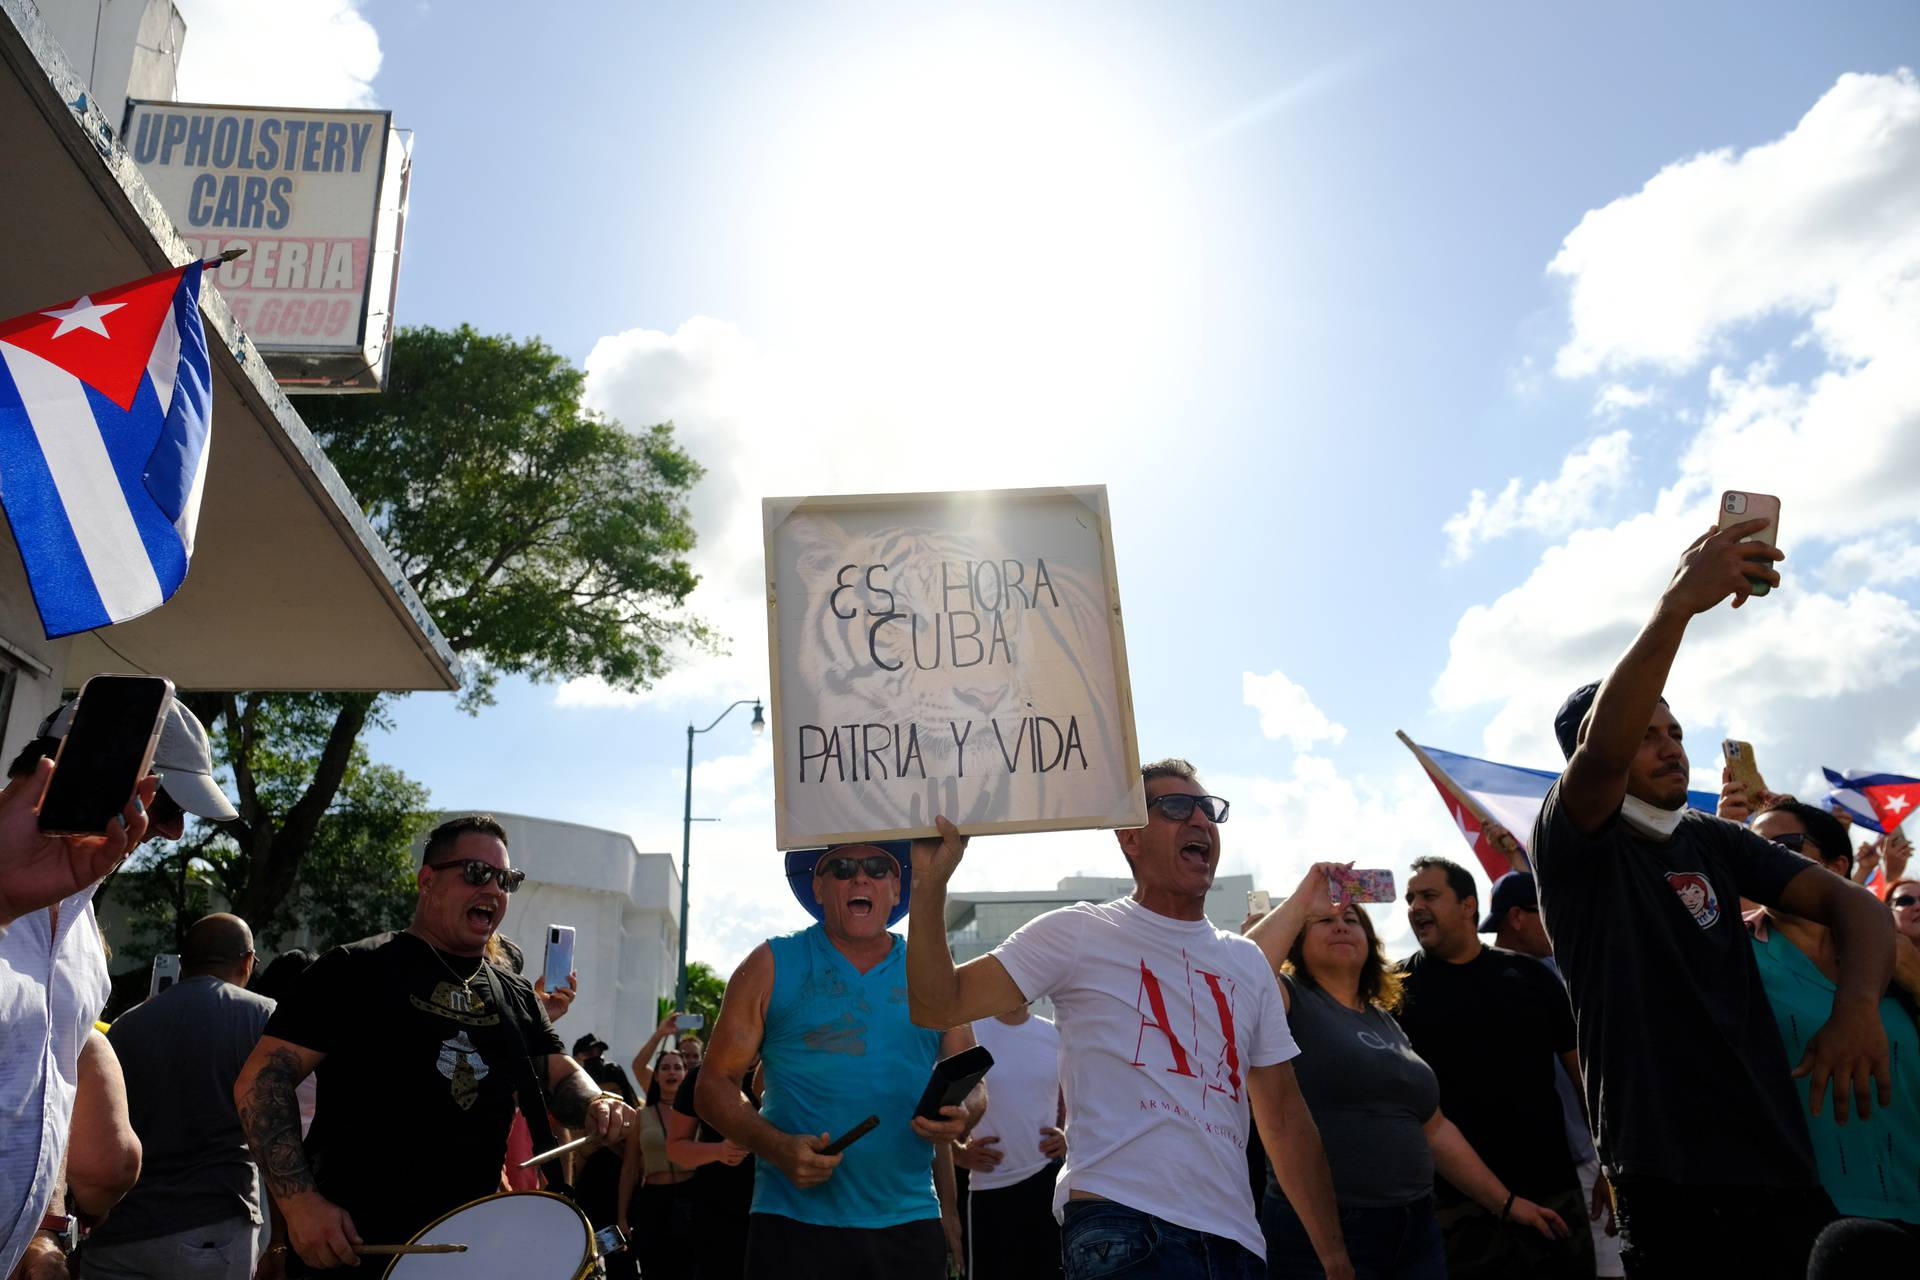 Emigres in Little Havana react to reports of protests in Cuba against the deteriorating economy